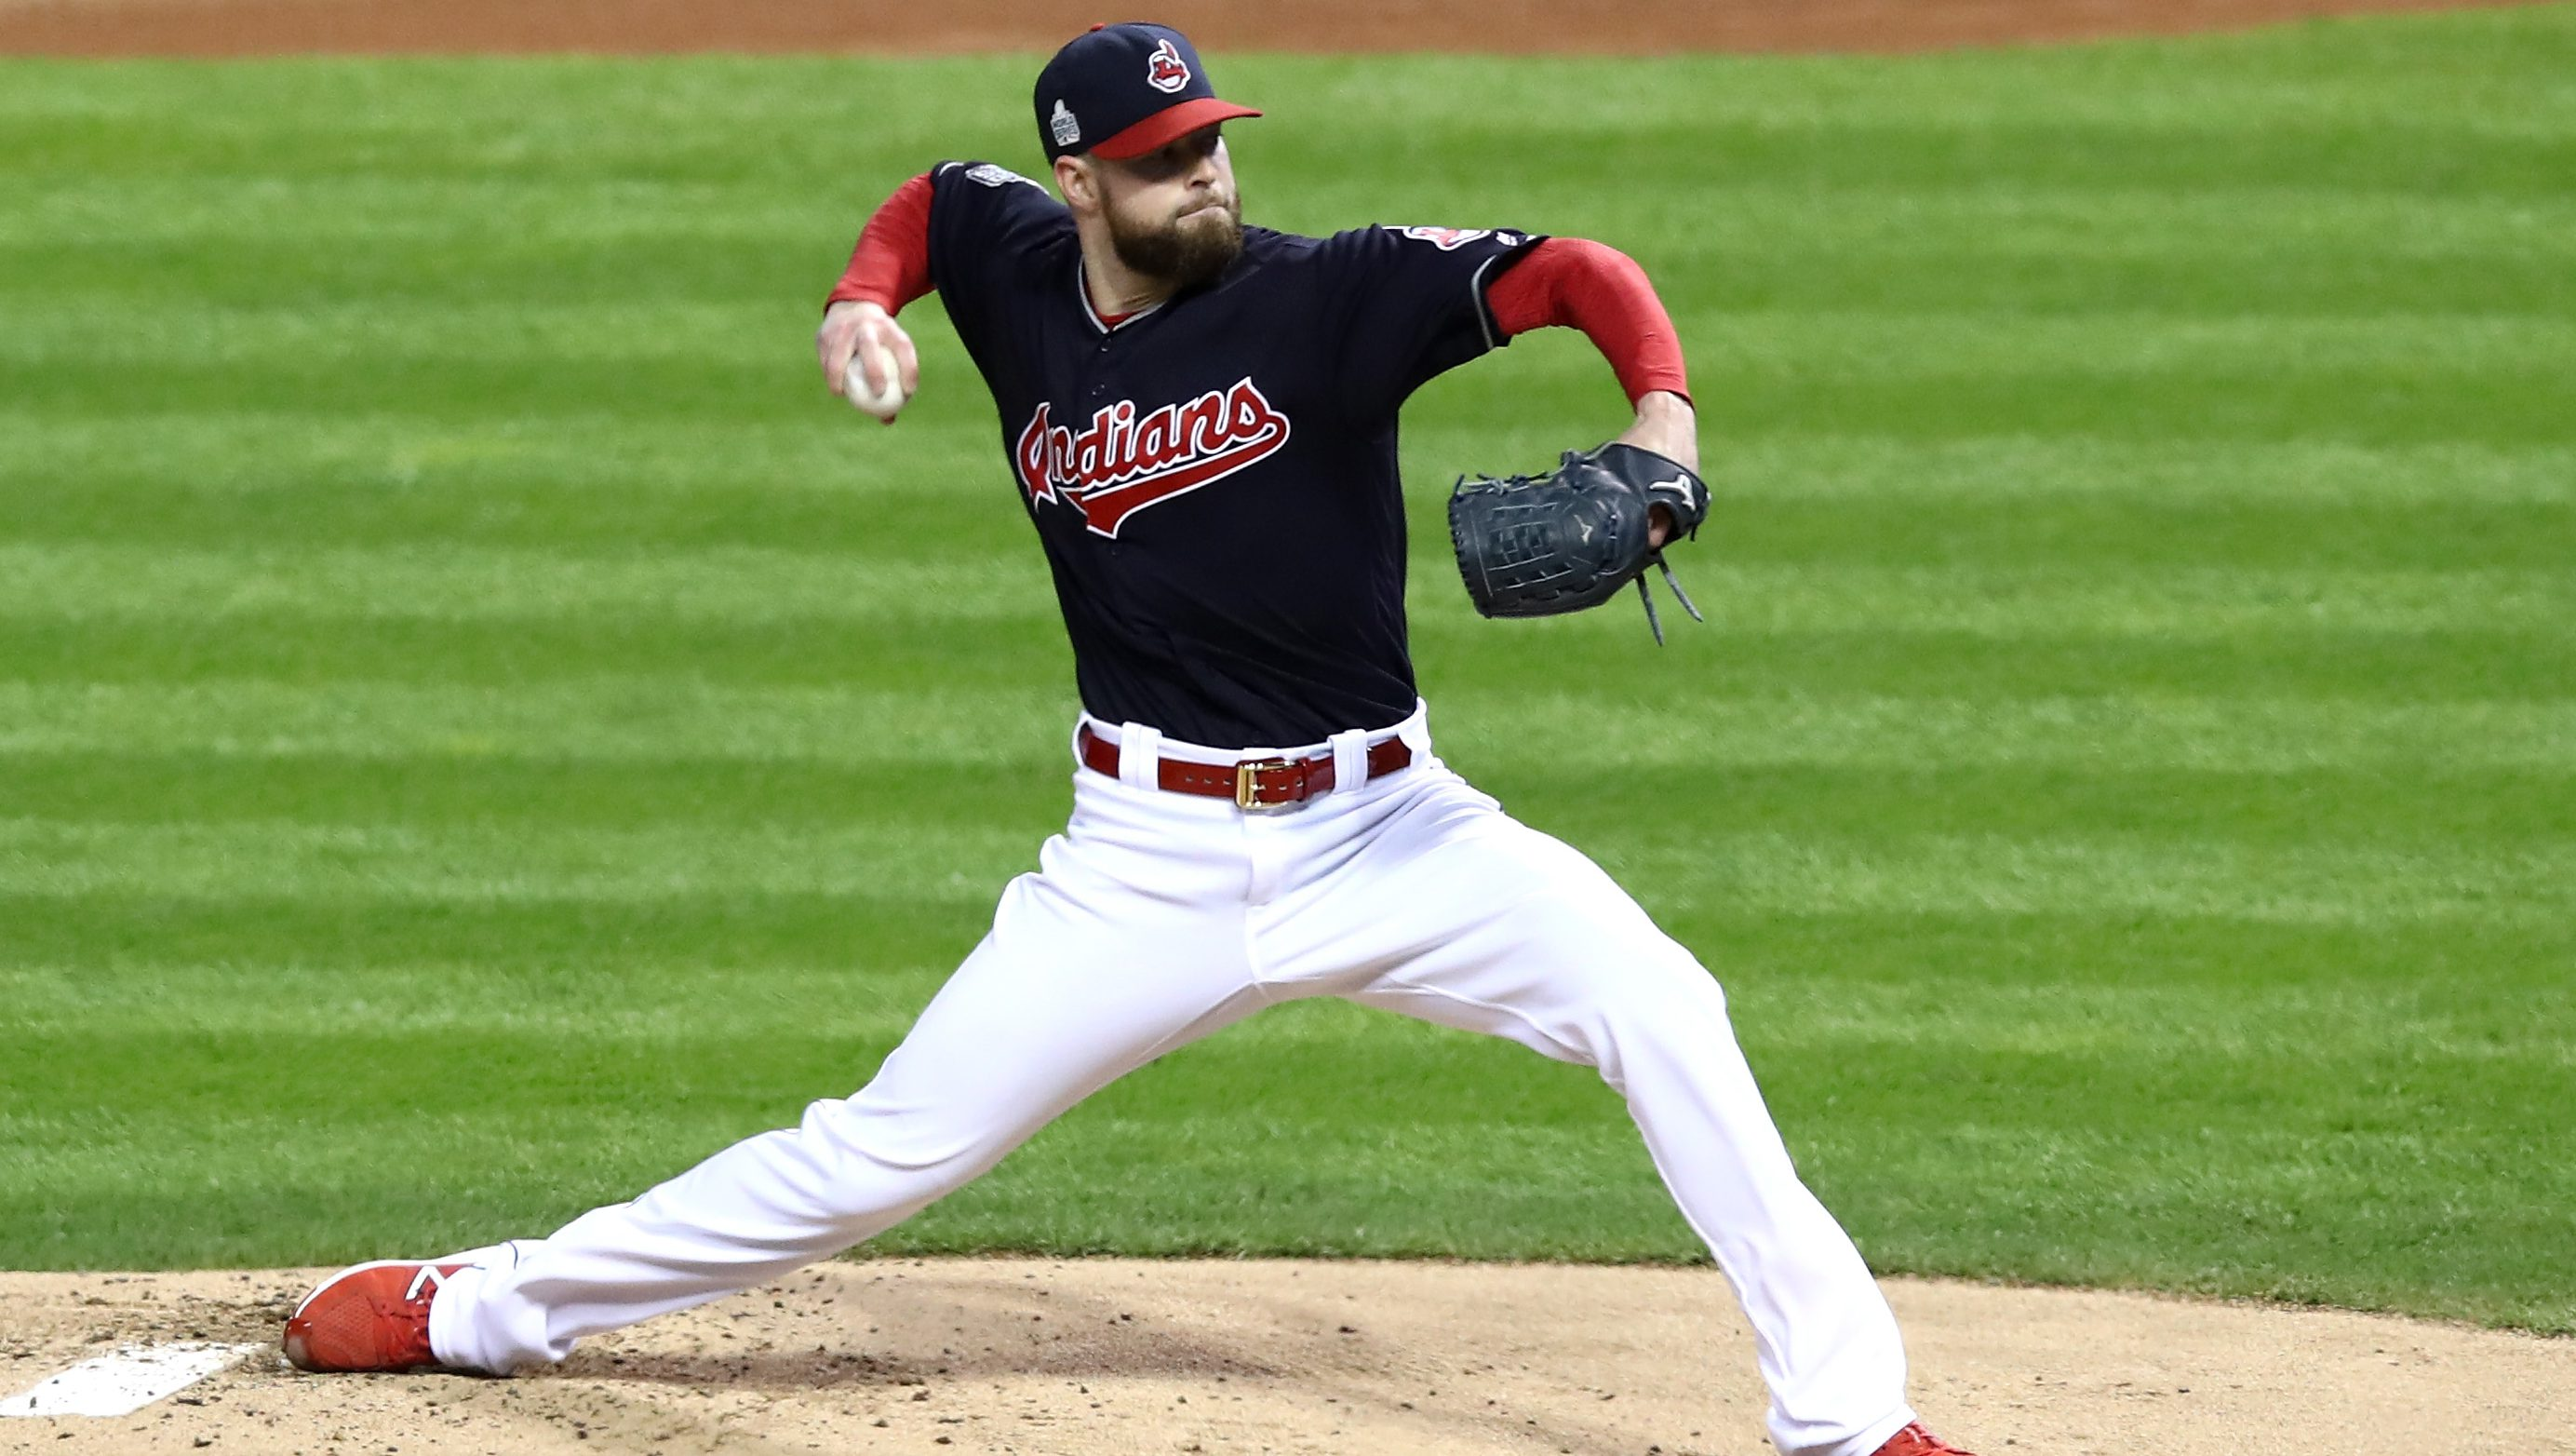 indians cubs score highlights series game heavy vs getty